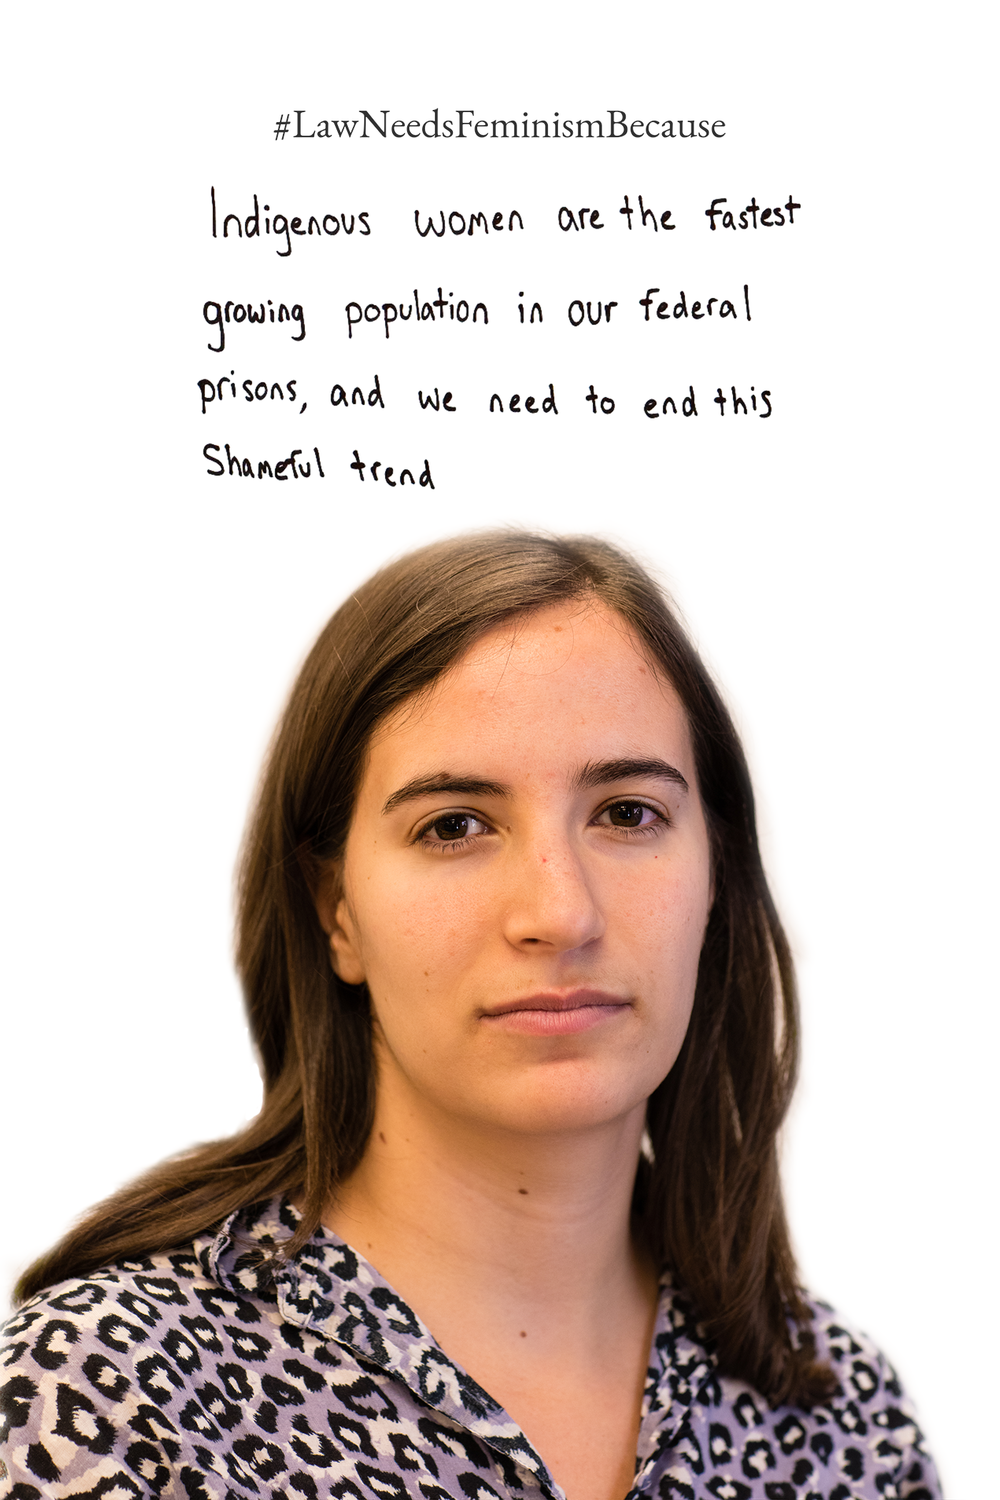 Law Needs Feminism Because  Indigenous women are the fastest growing population in our federal prisons, and we need to end this shameful trend